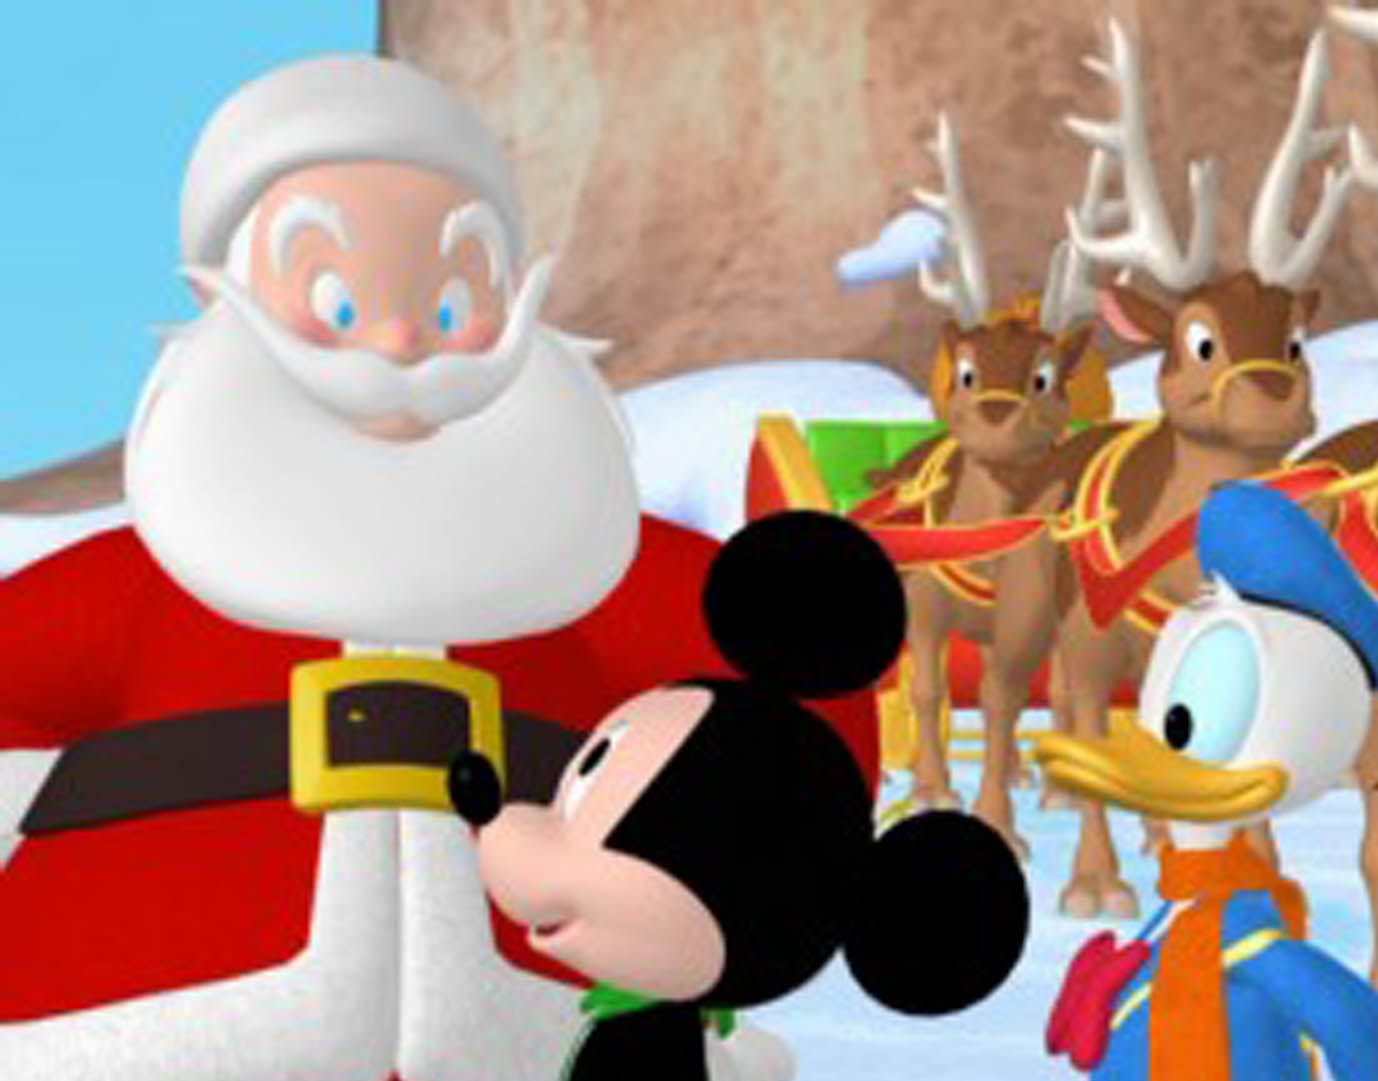 http://3.bp.blogspot.com/-NUlhy7chacs/T9hrzMQiEBI/AAAAAAAAE18/yqsmNqdJ9LE/s1600/Mickey_mouse_and_santa_clouse_wallpaper_2.jpg